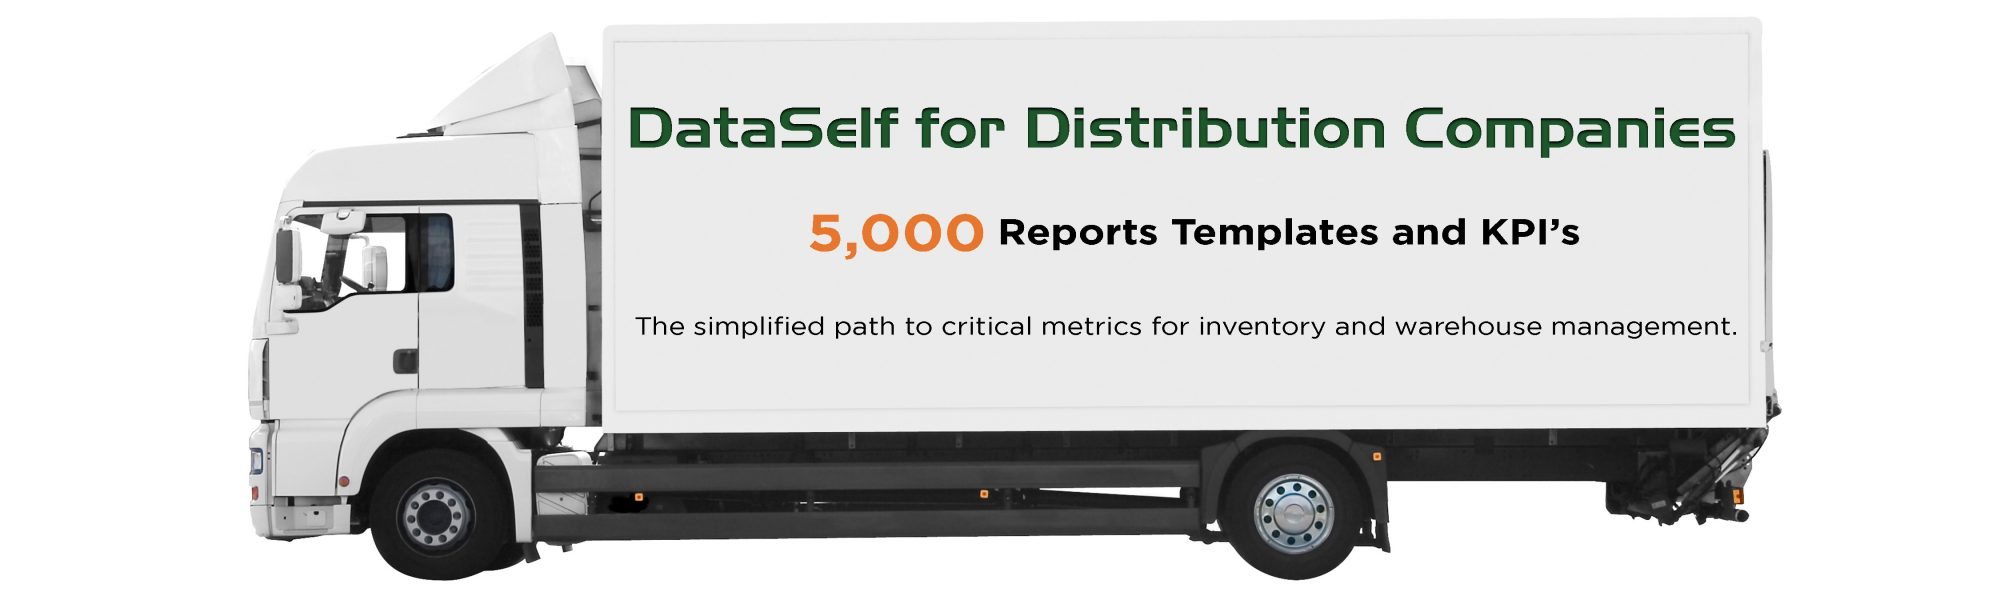 KPIs help distribution companies minimize supply chain inefficiencies and analyze sales to maximize profits.